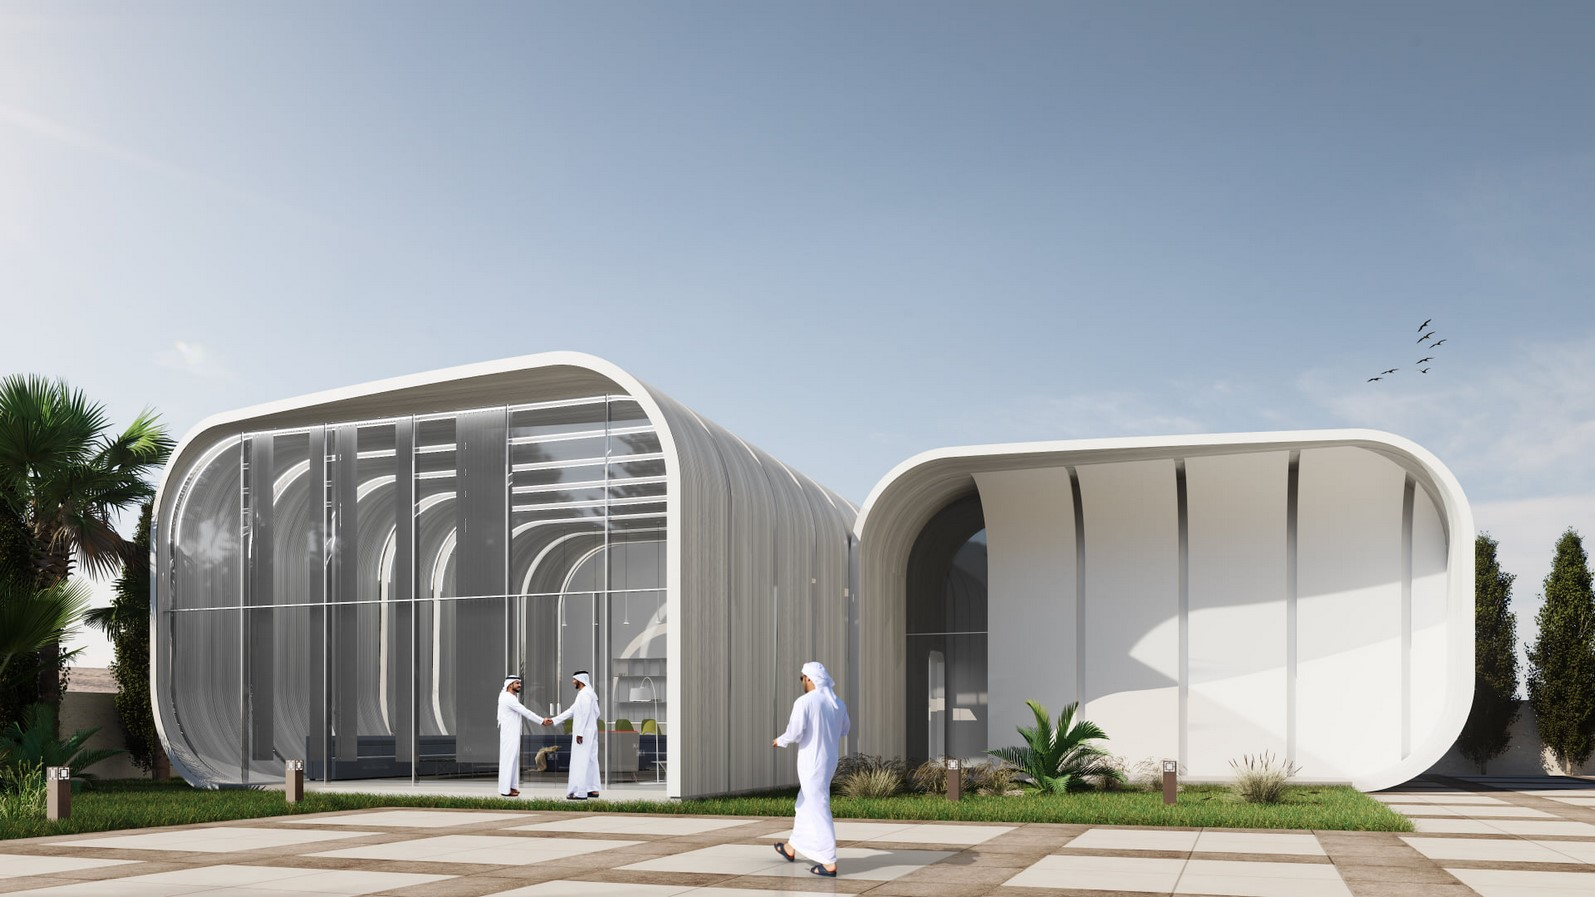 Modular 3D-Printed Majlis House With Smooth Concrete Walls In Abu Dhabi designed by MEAN* - Sheet1